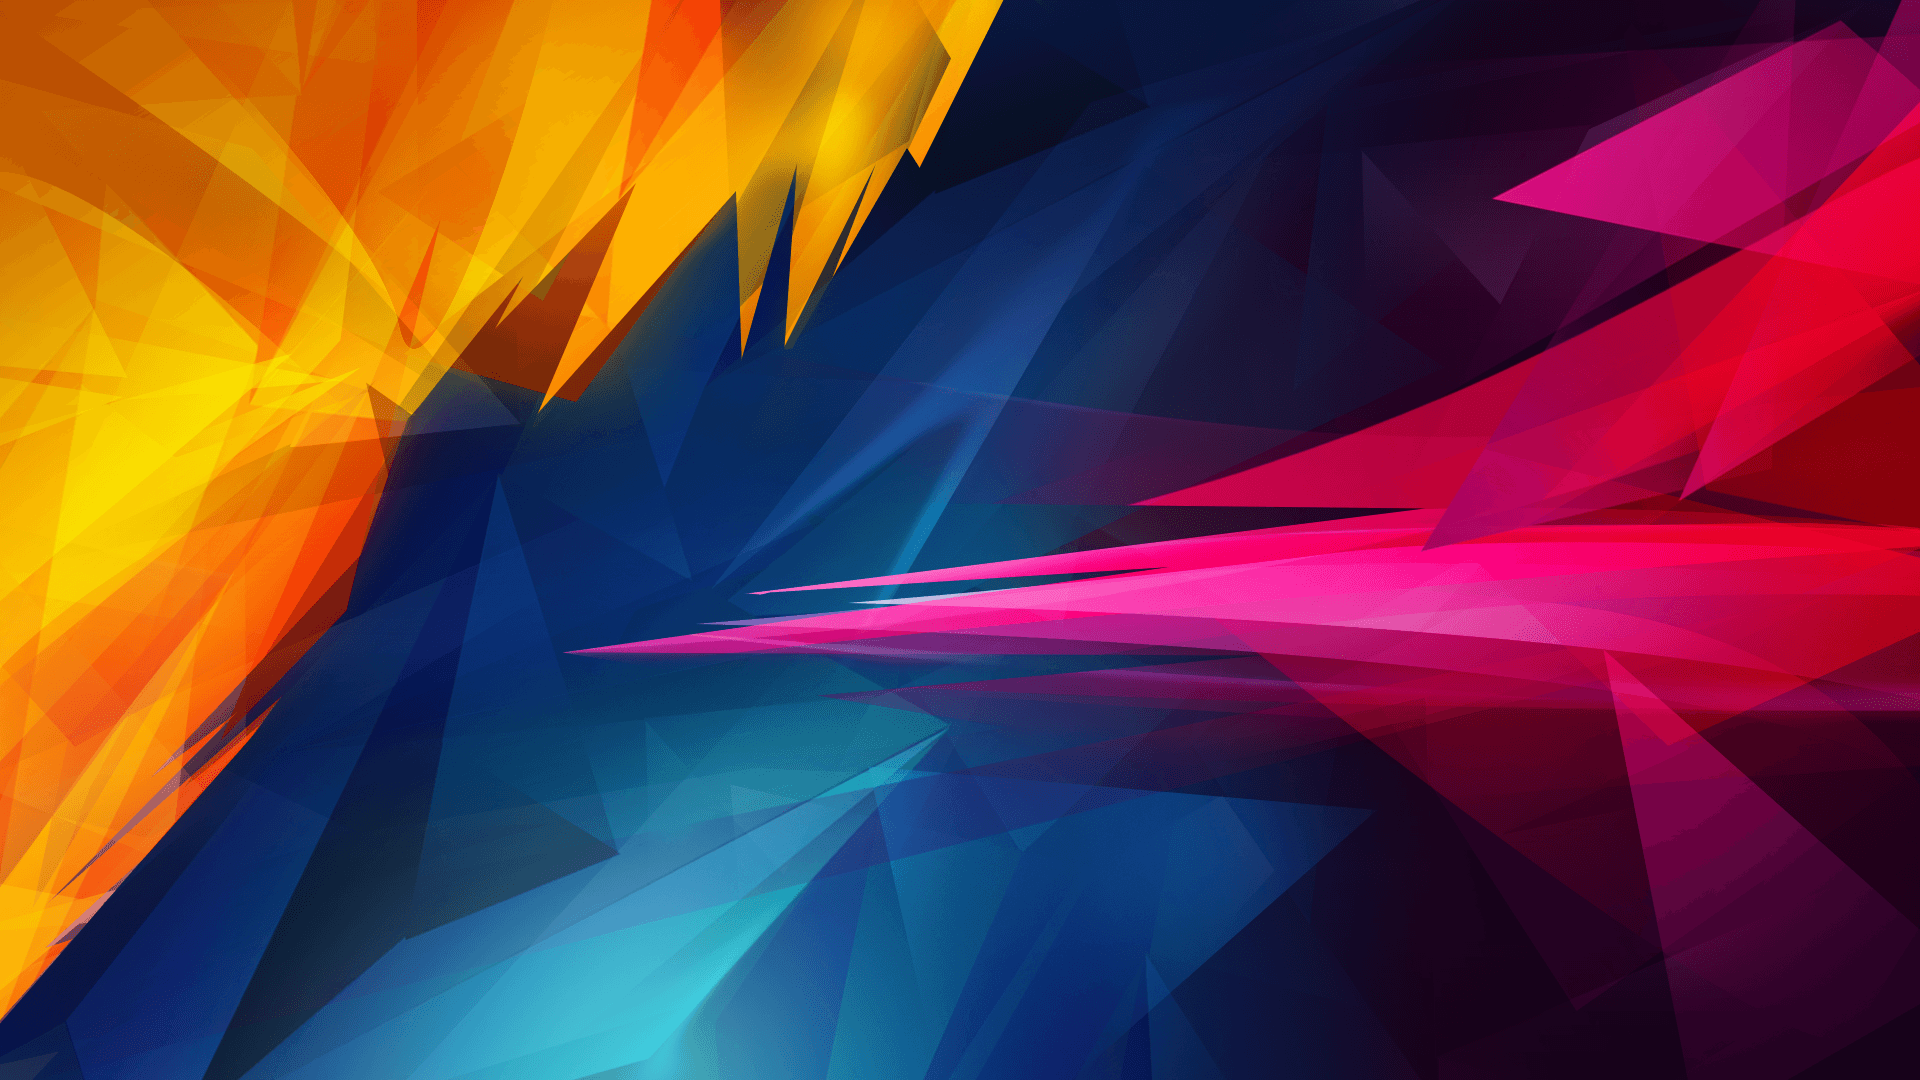 HD Abstract Wallpapers Top Free HD Abstract Backgrounds